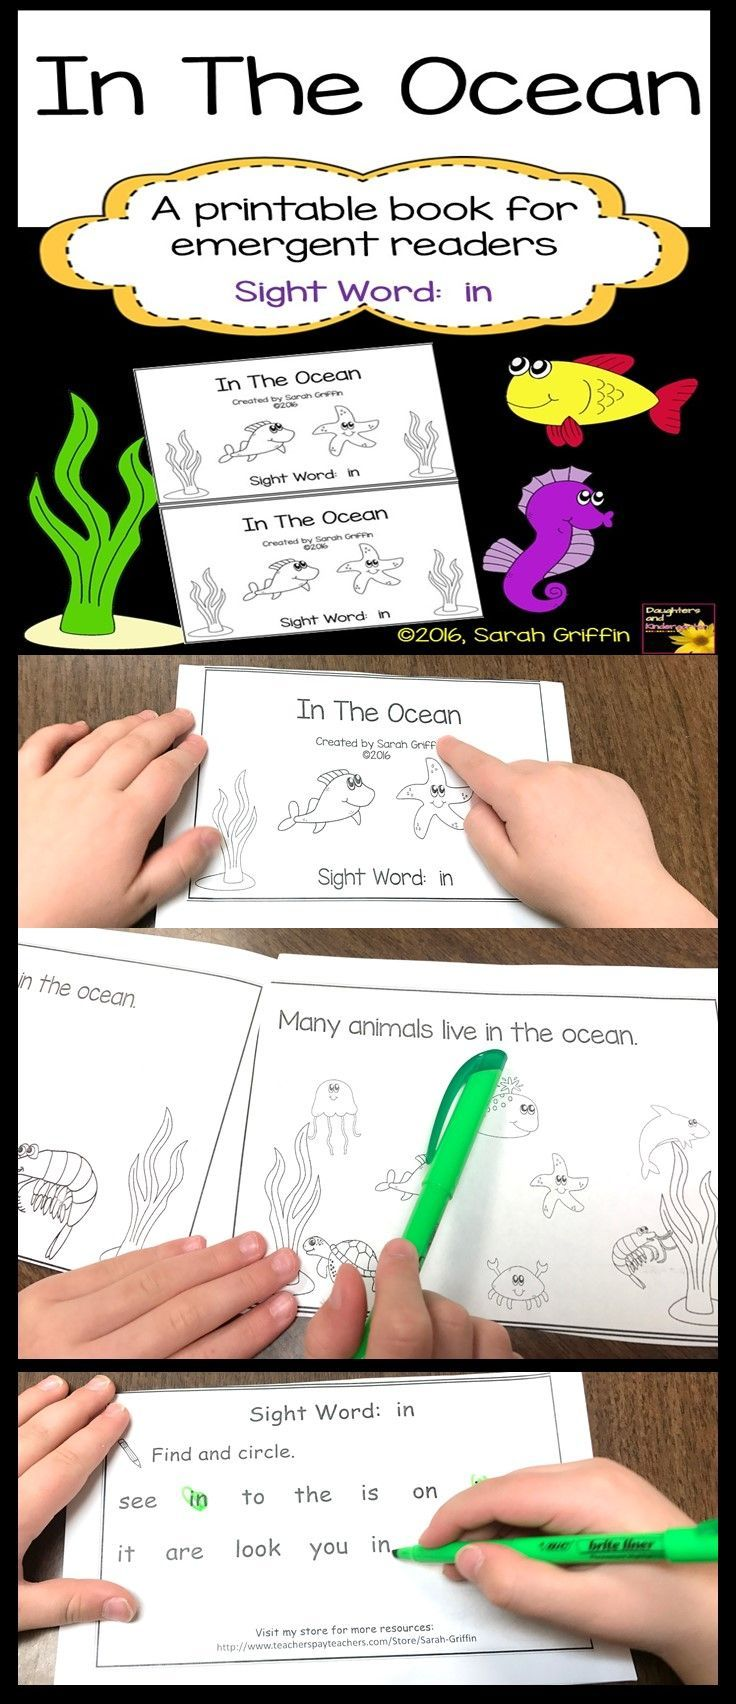 In the Ocean | Decodable book for emergent readers | predictable book | printable | sight word reader | Kindergarten | first grade